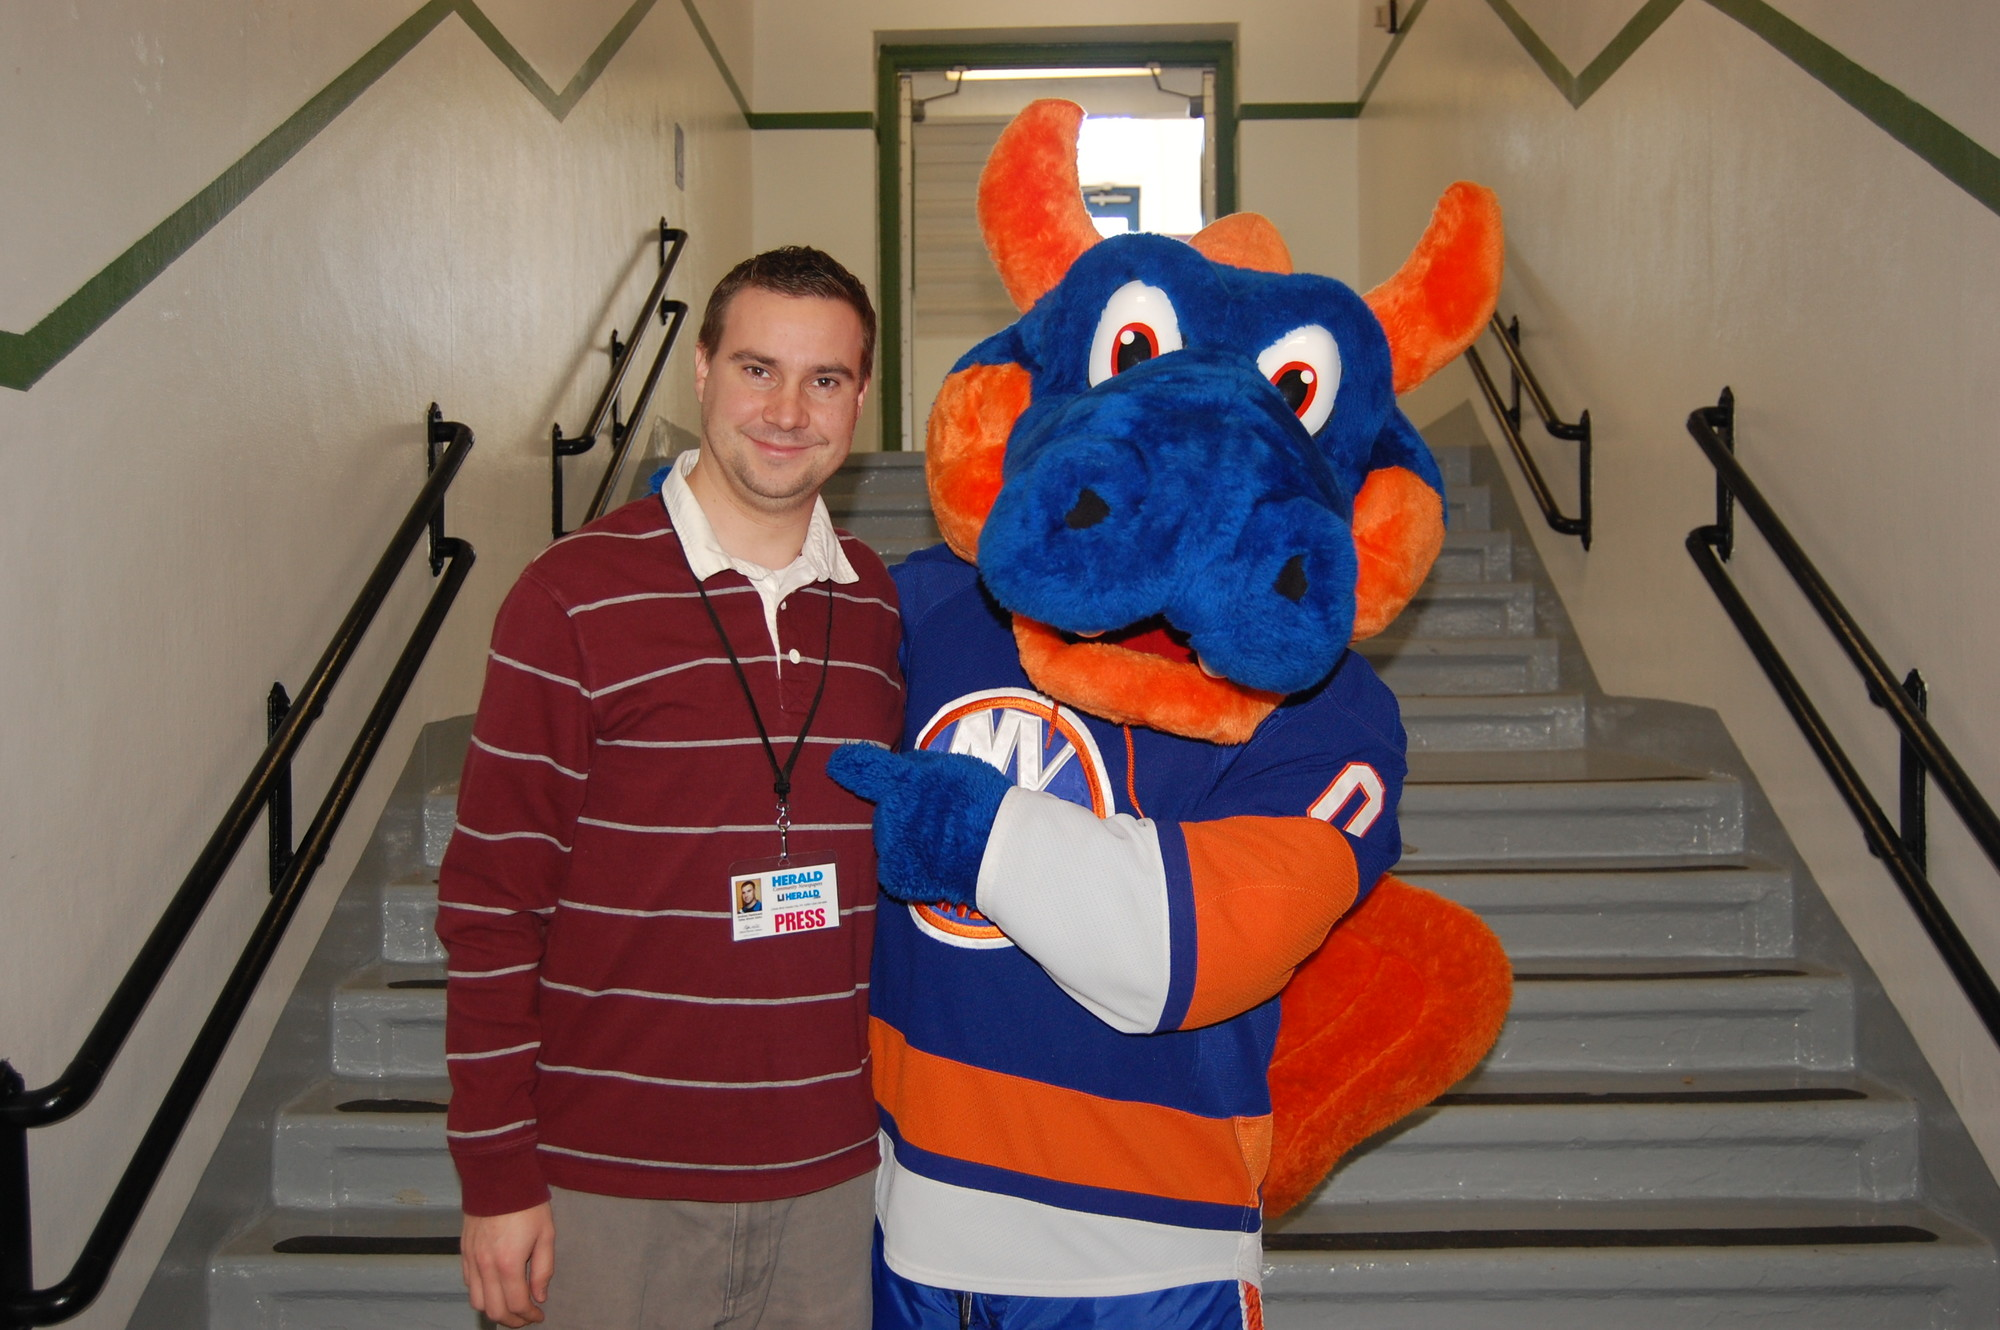 Meeting Sparky the Dragon, the mascot of my favorite hockey team, at the Clear Stream Avenue School.